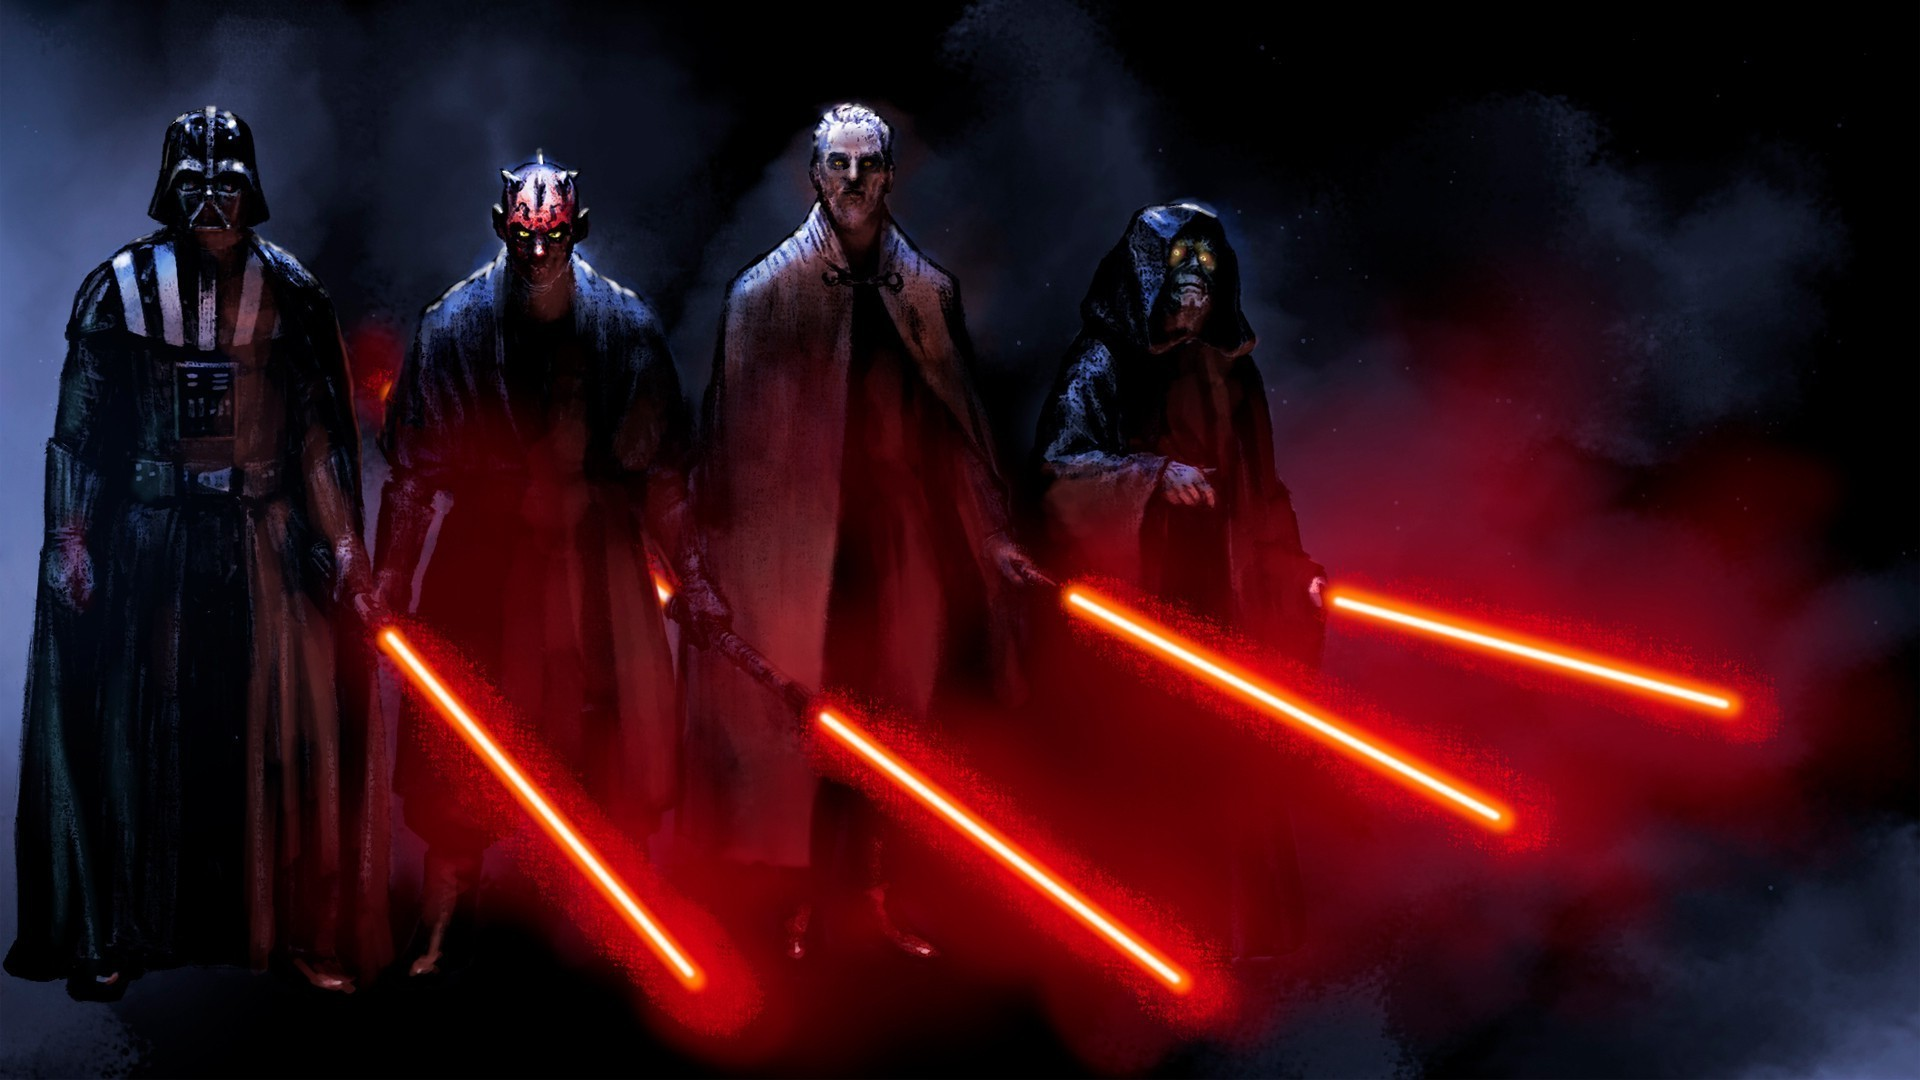 Star Wars images Darth Maul HD wallpaper and background photos   HD  Wallpapers   Pinterest   Darth maul wallpaper, Hd wallpaper and Wallpaper